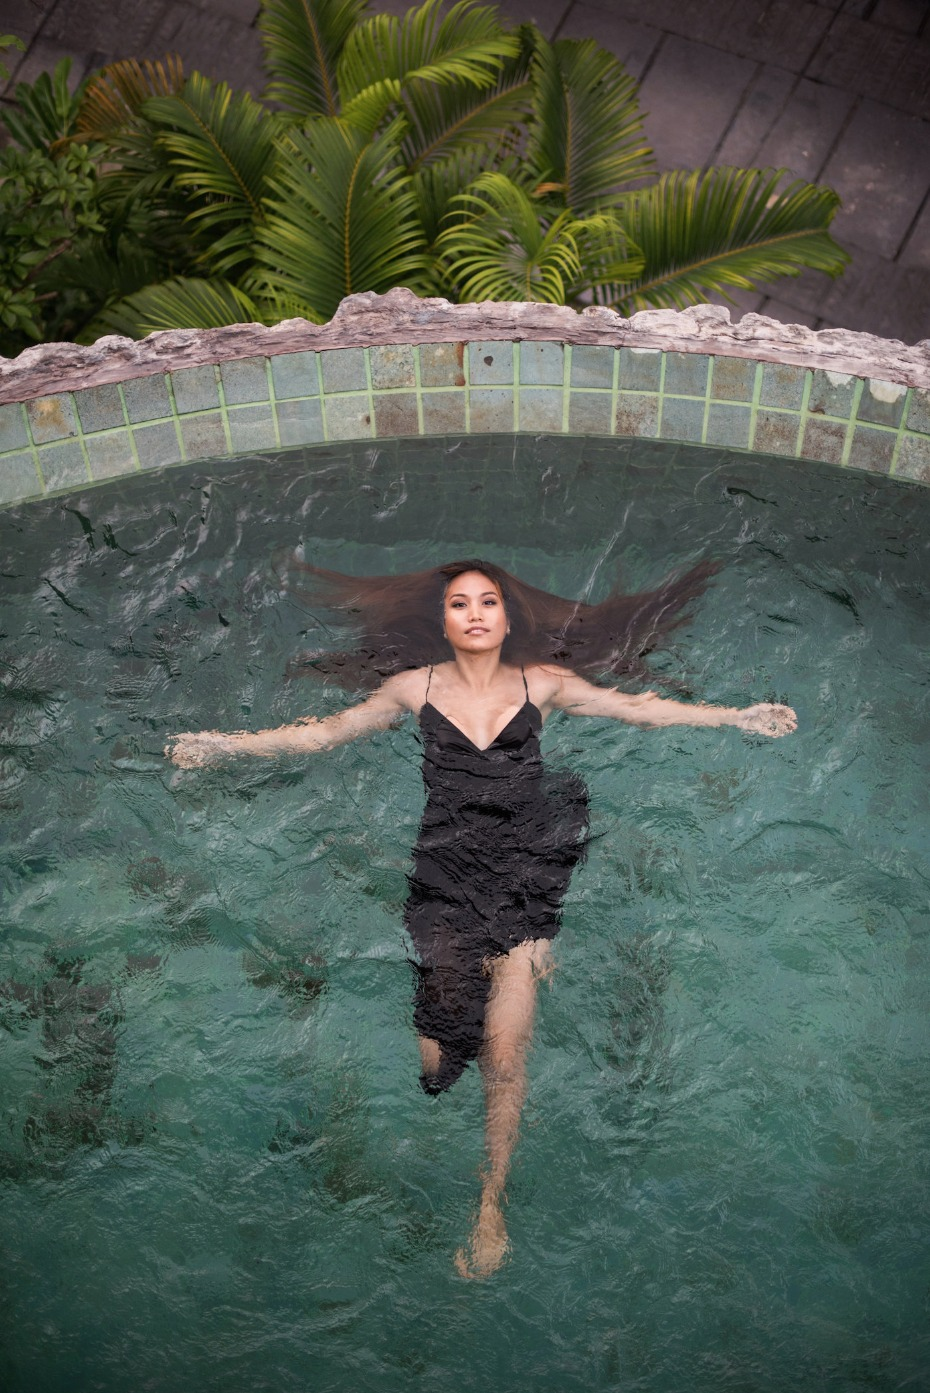 floating around in the pool